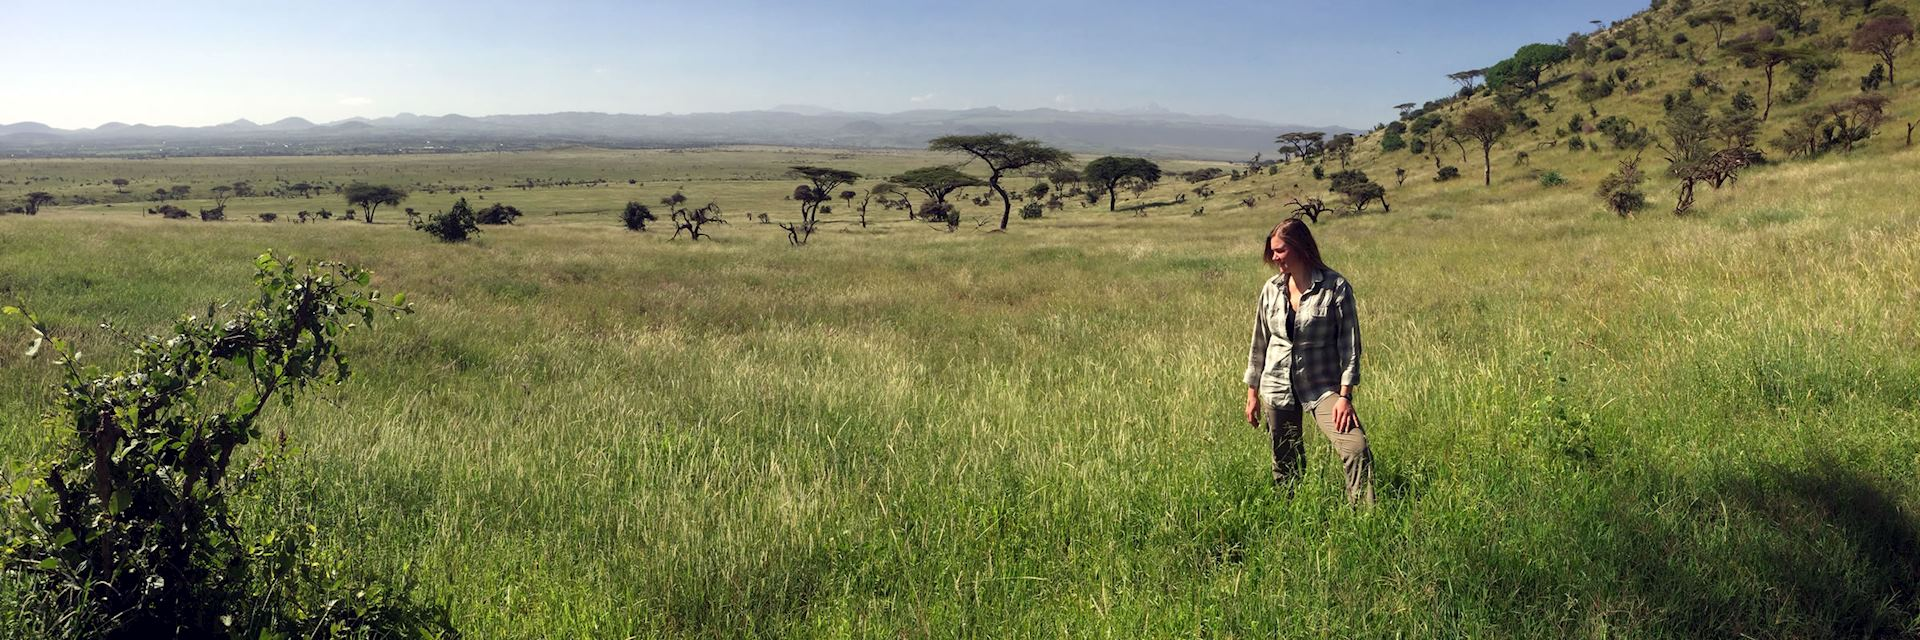 Amy on a walking safari in Lewa Wilderness Conservancy, Kenya